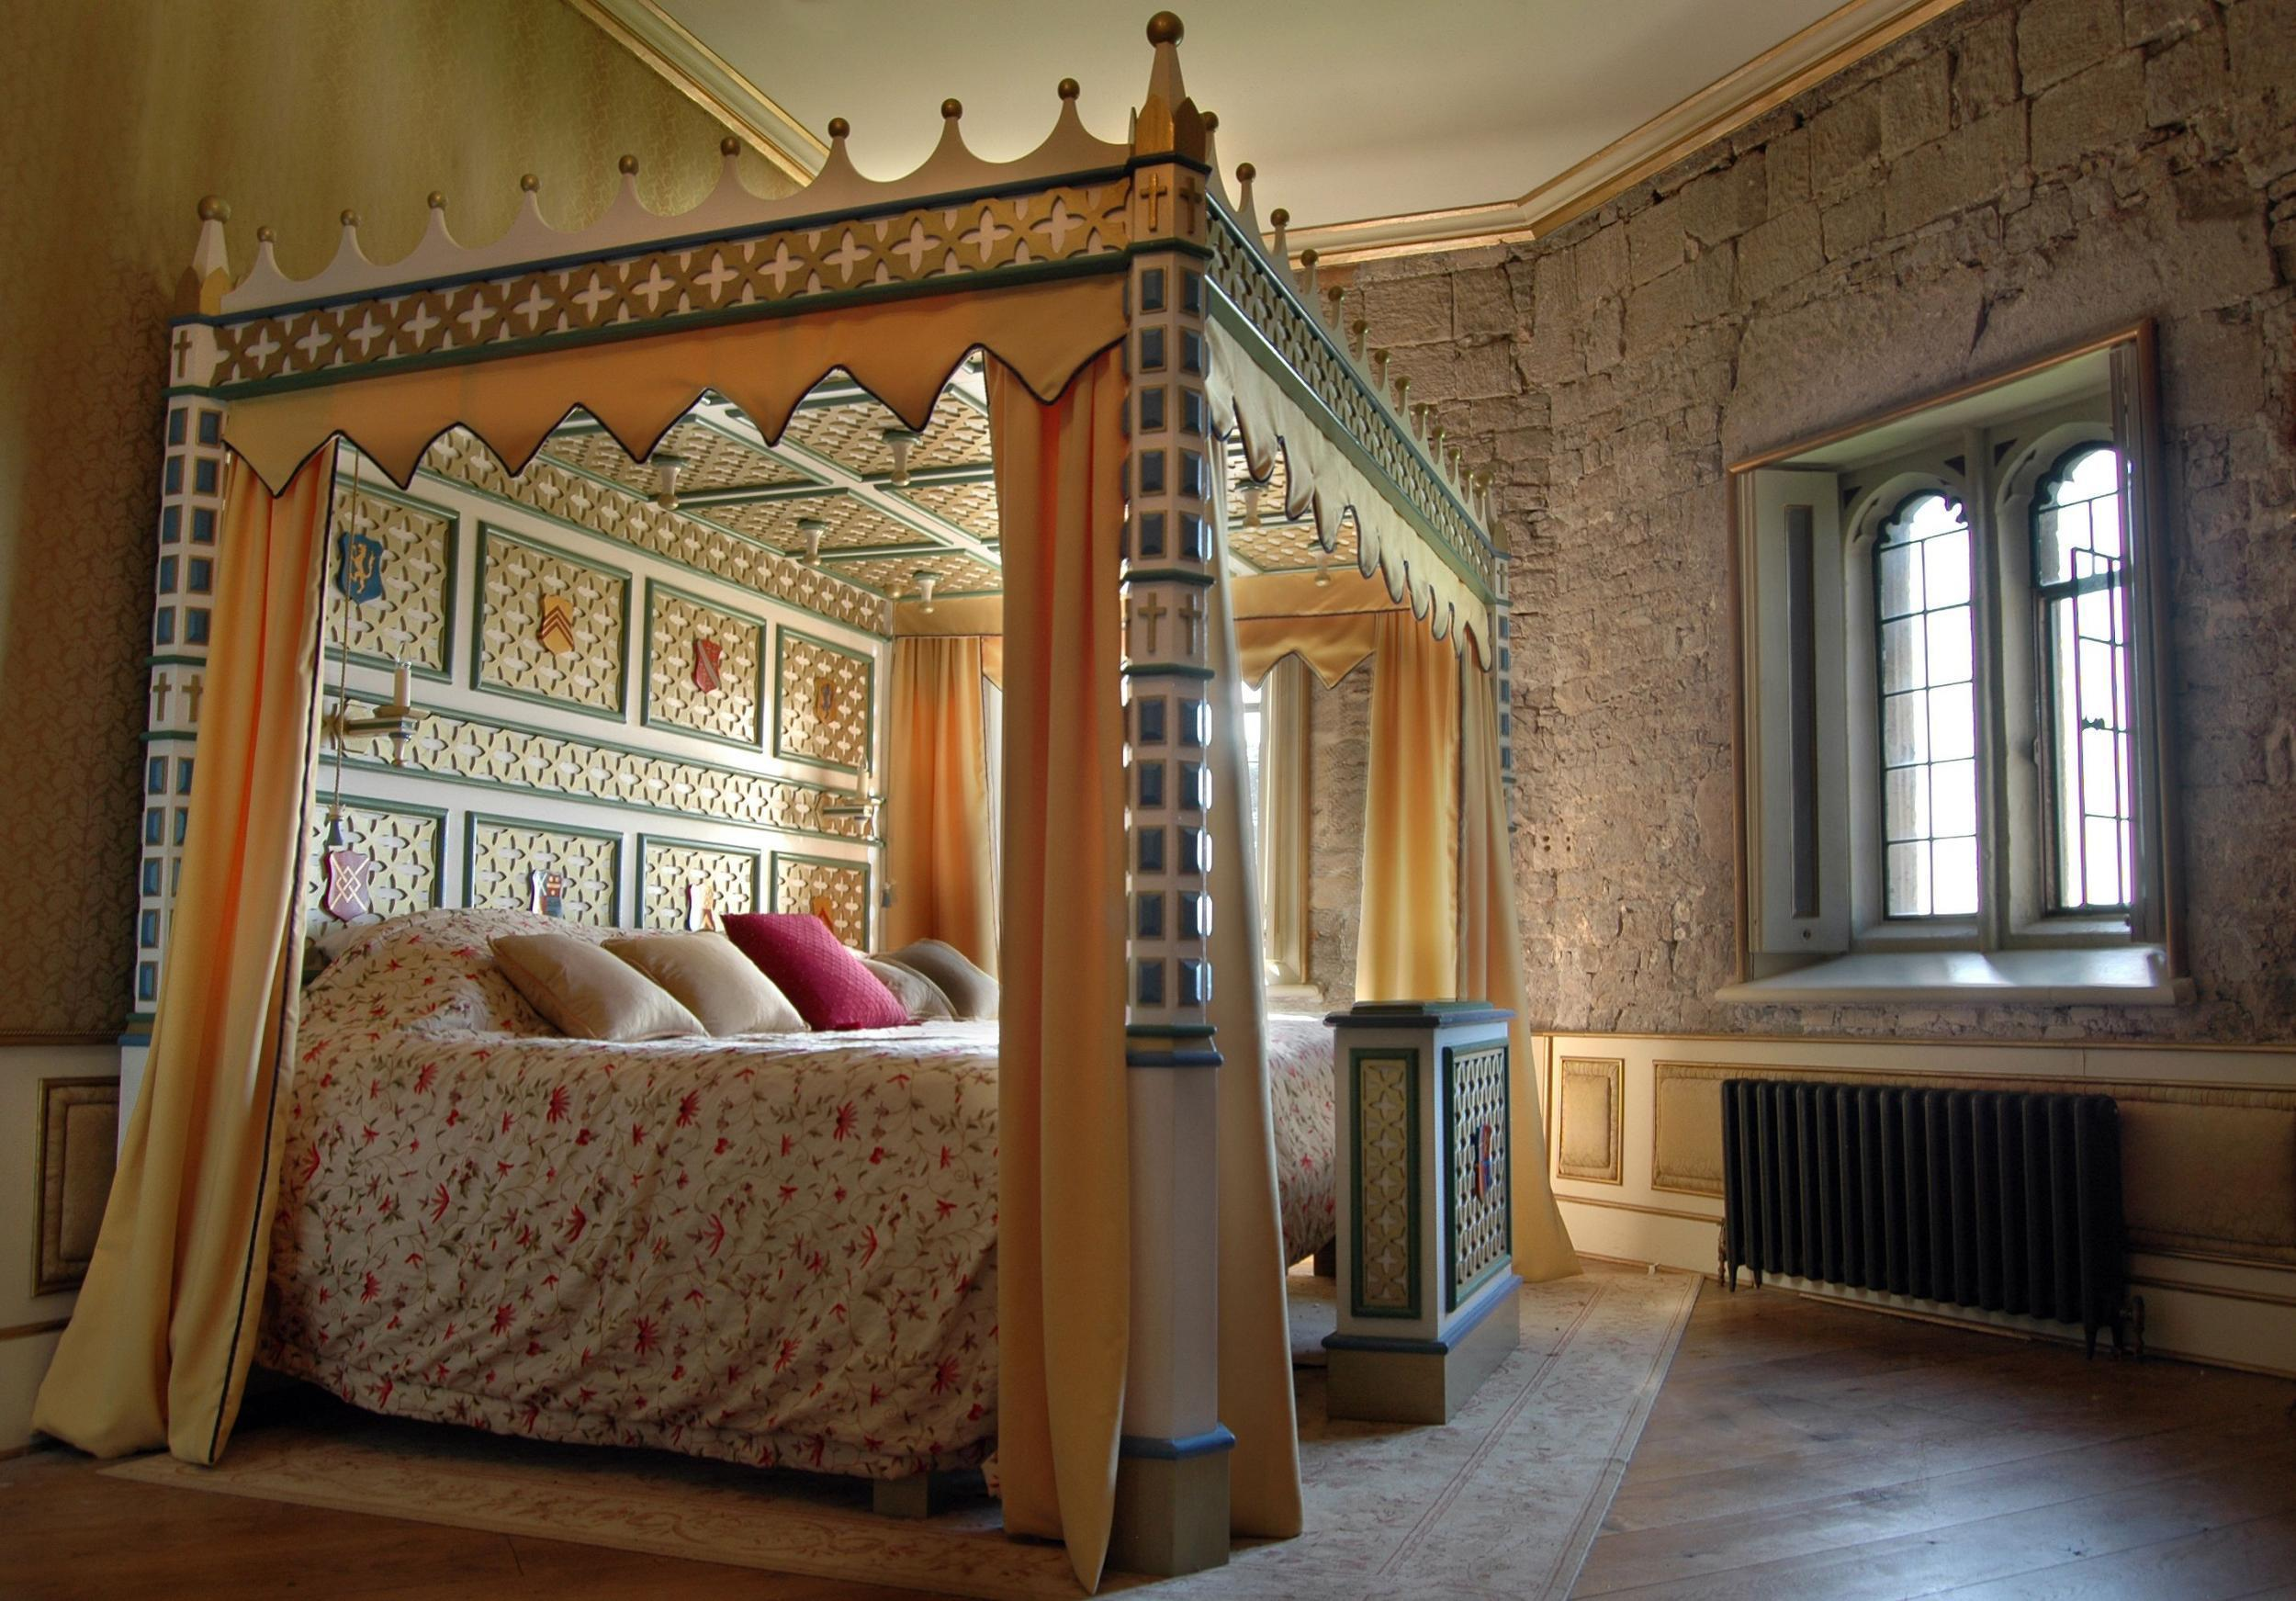 Best British castle hotels: From Game of Thrones strongholds